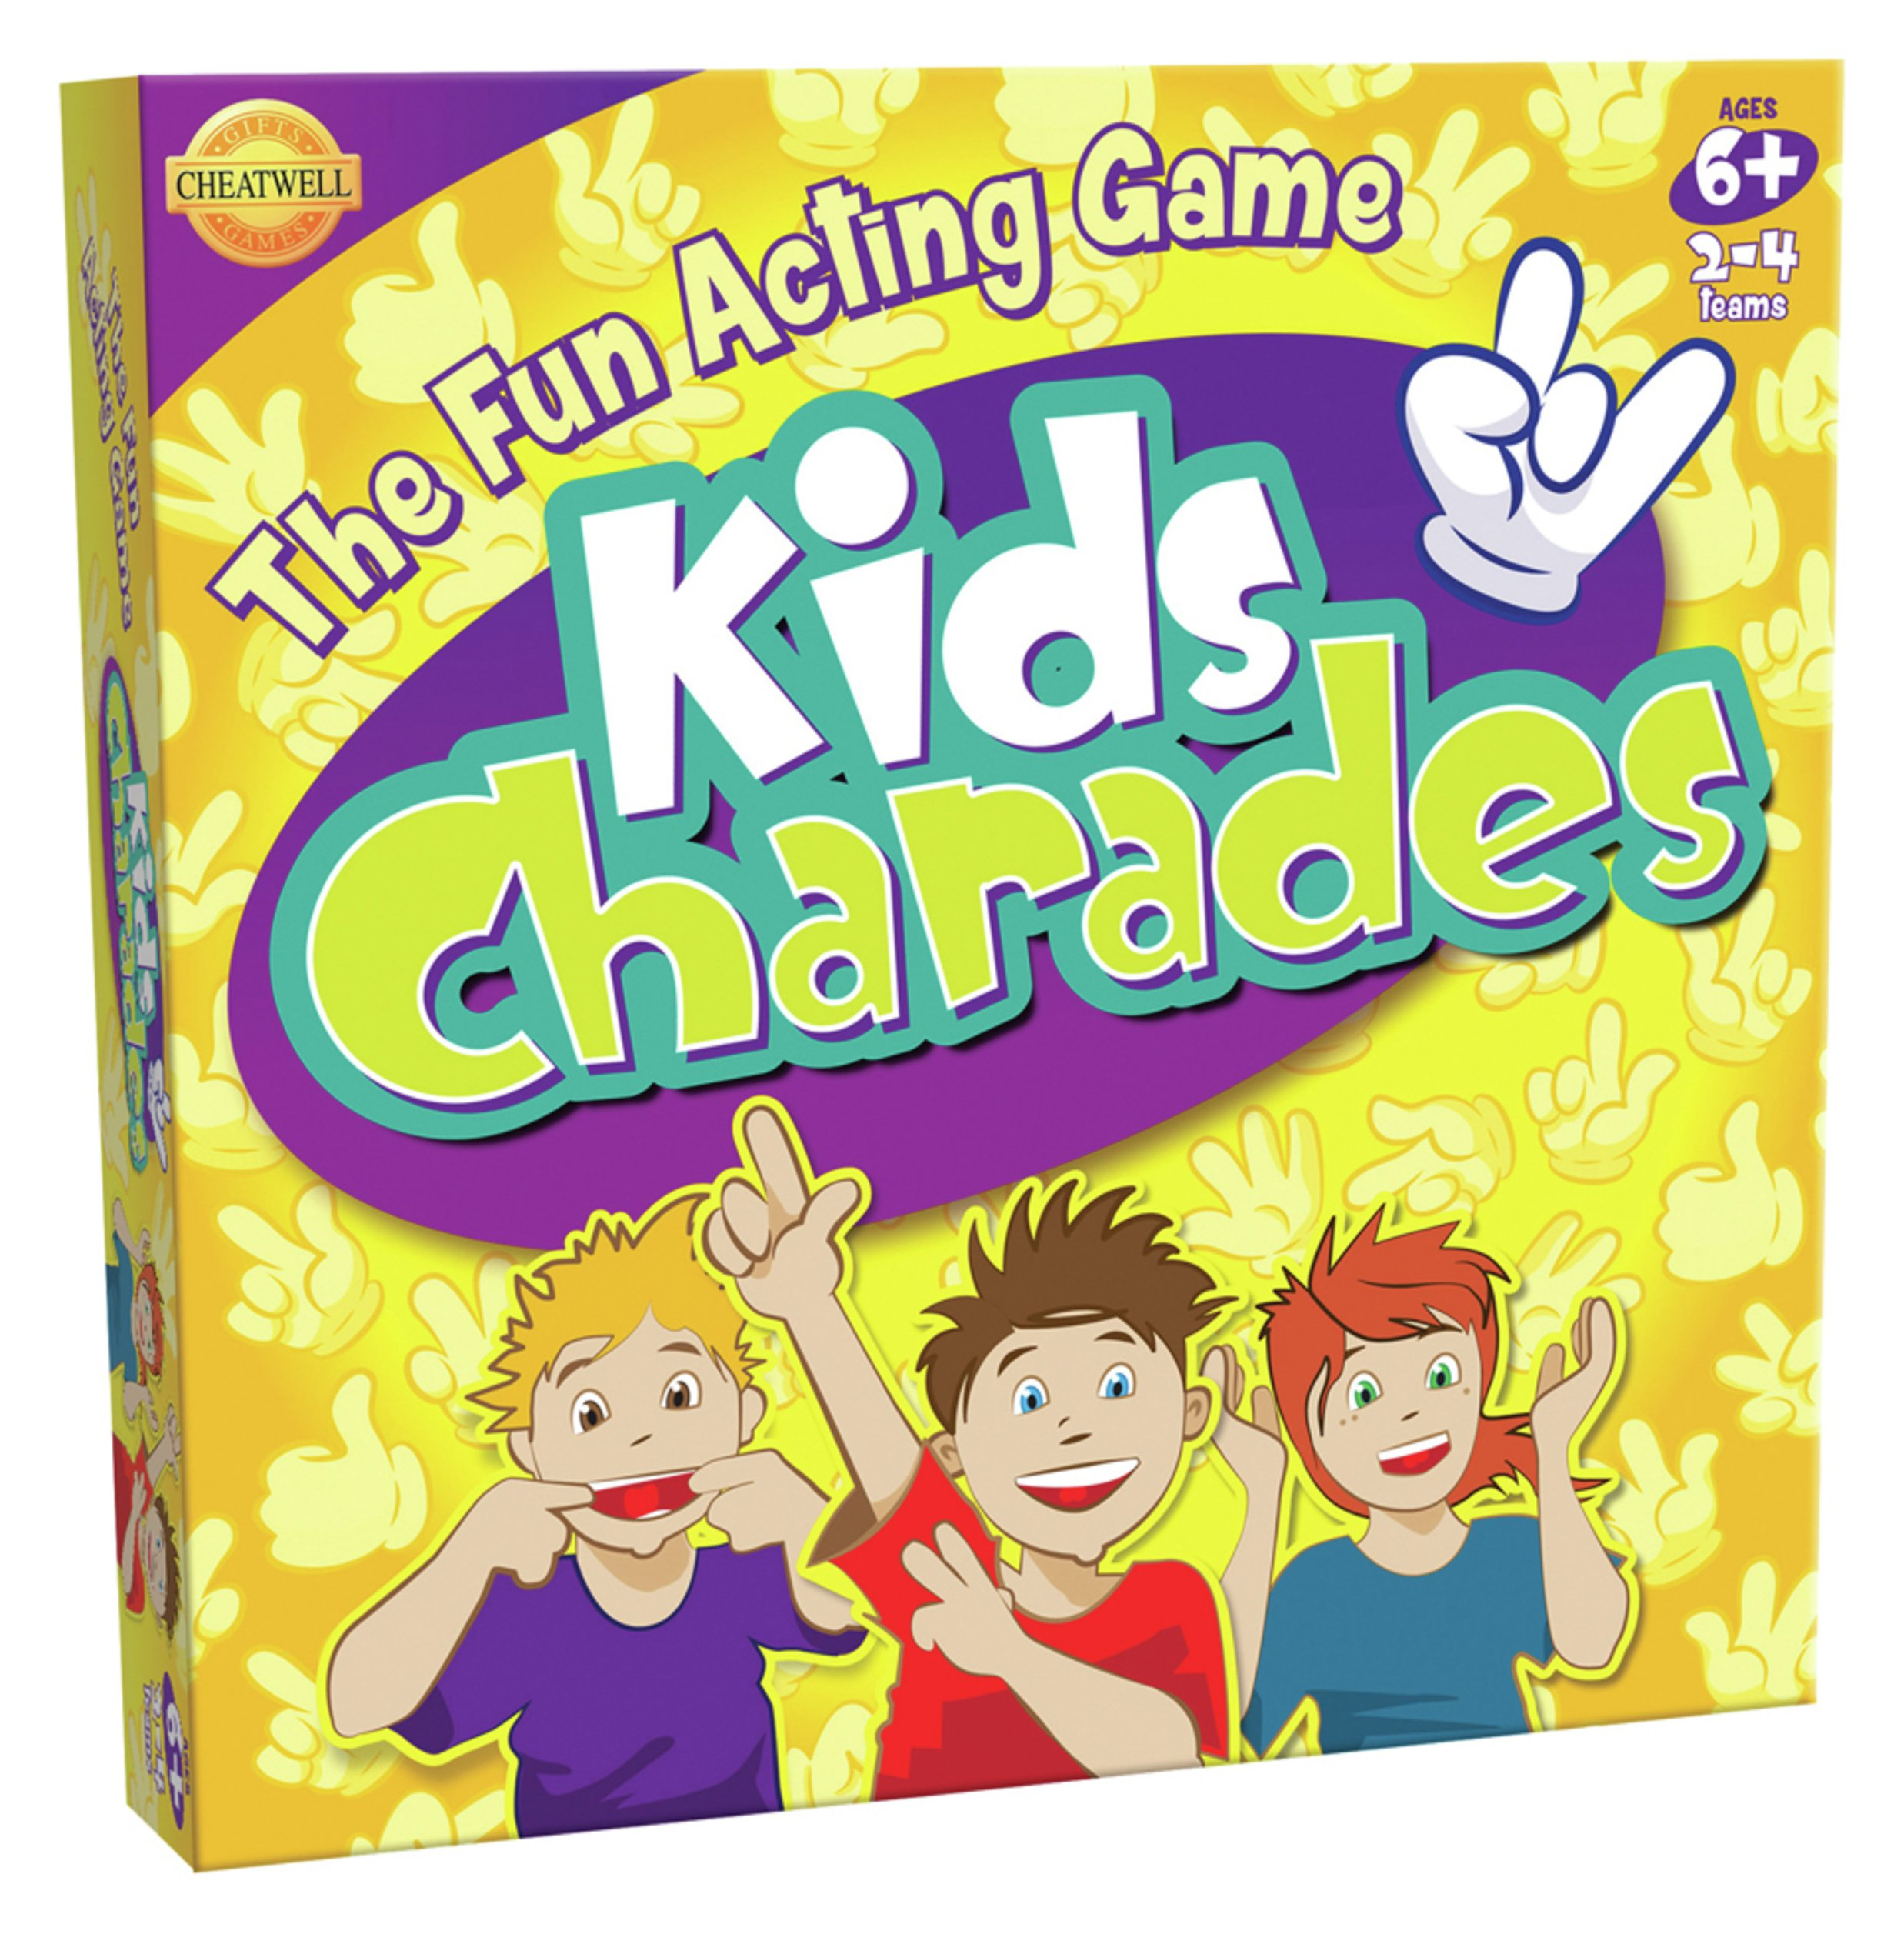 Image of Cheatwell Games Kids Charades Game